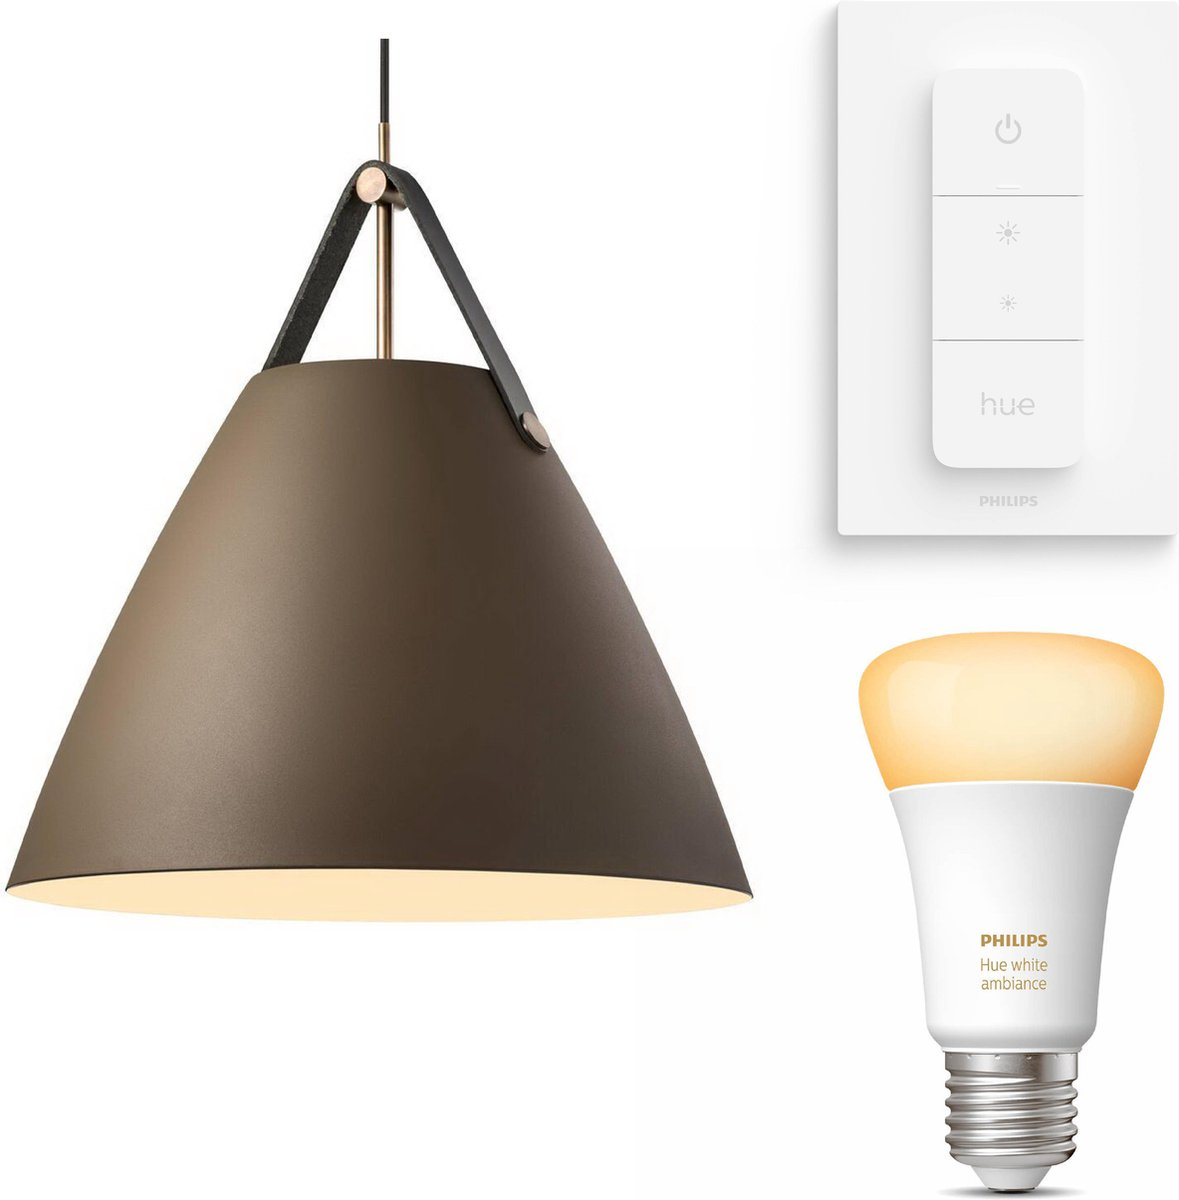 Nordlux Strap 48 hanglamp - LED - bruin - 1 lichtpunt - Incl. Philips Hue White Ambiance E27 & dimmer